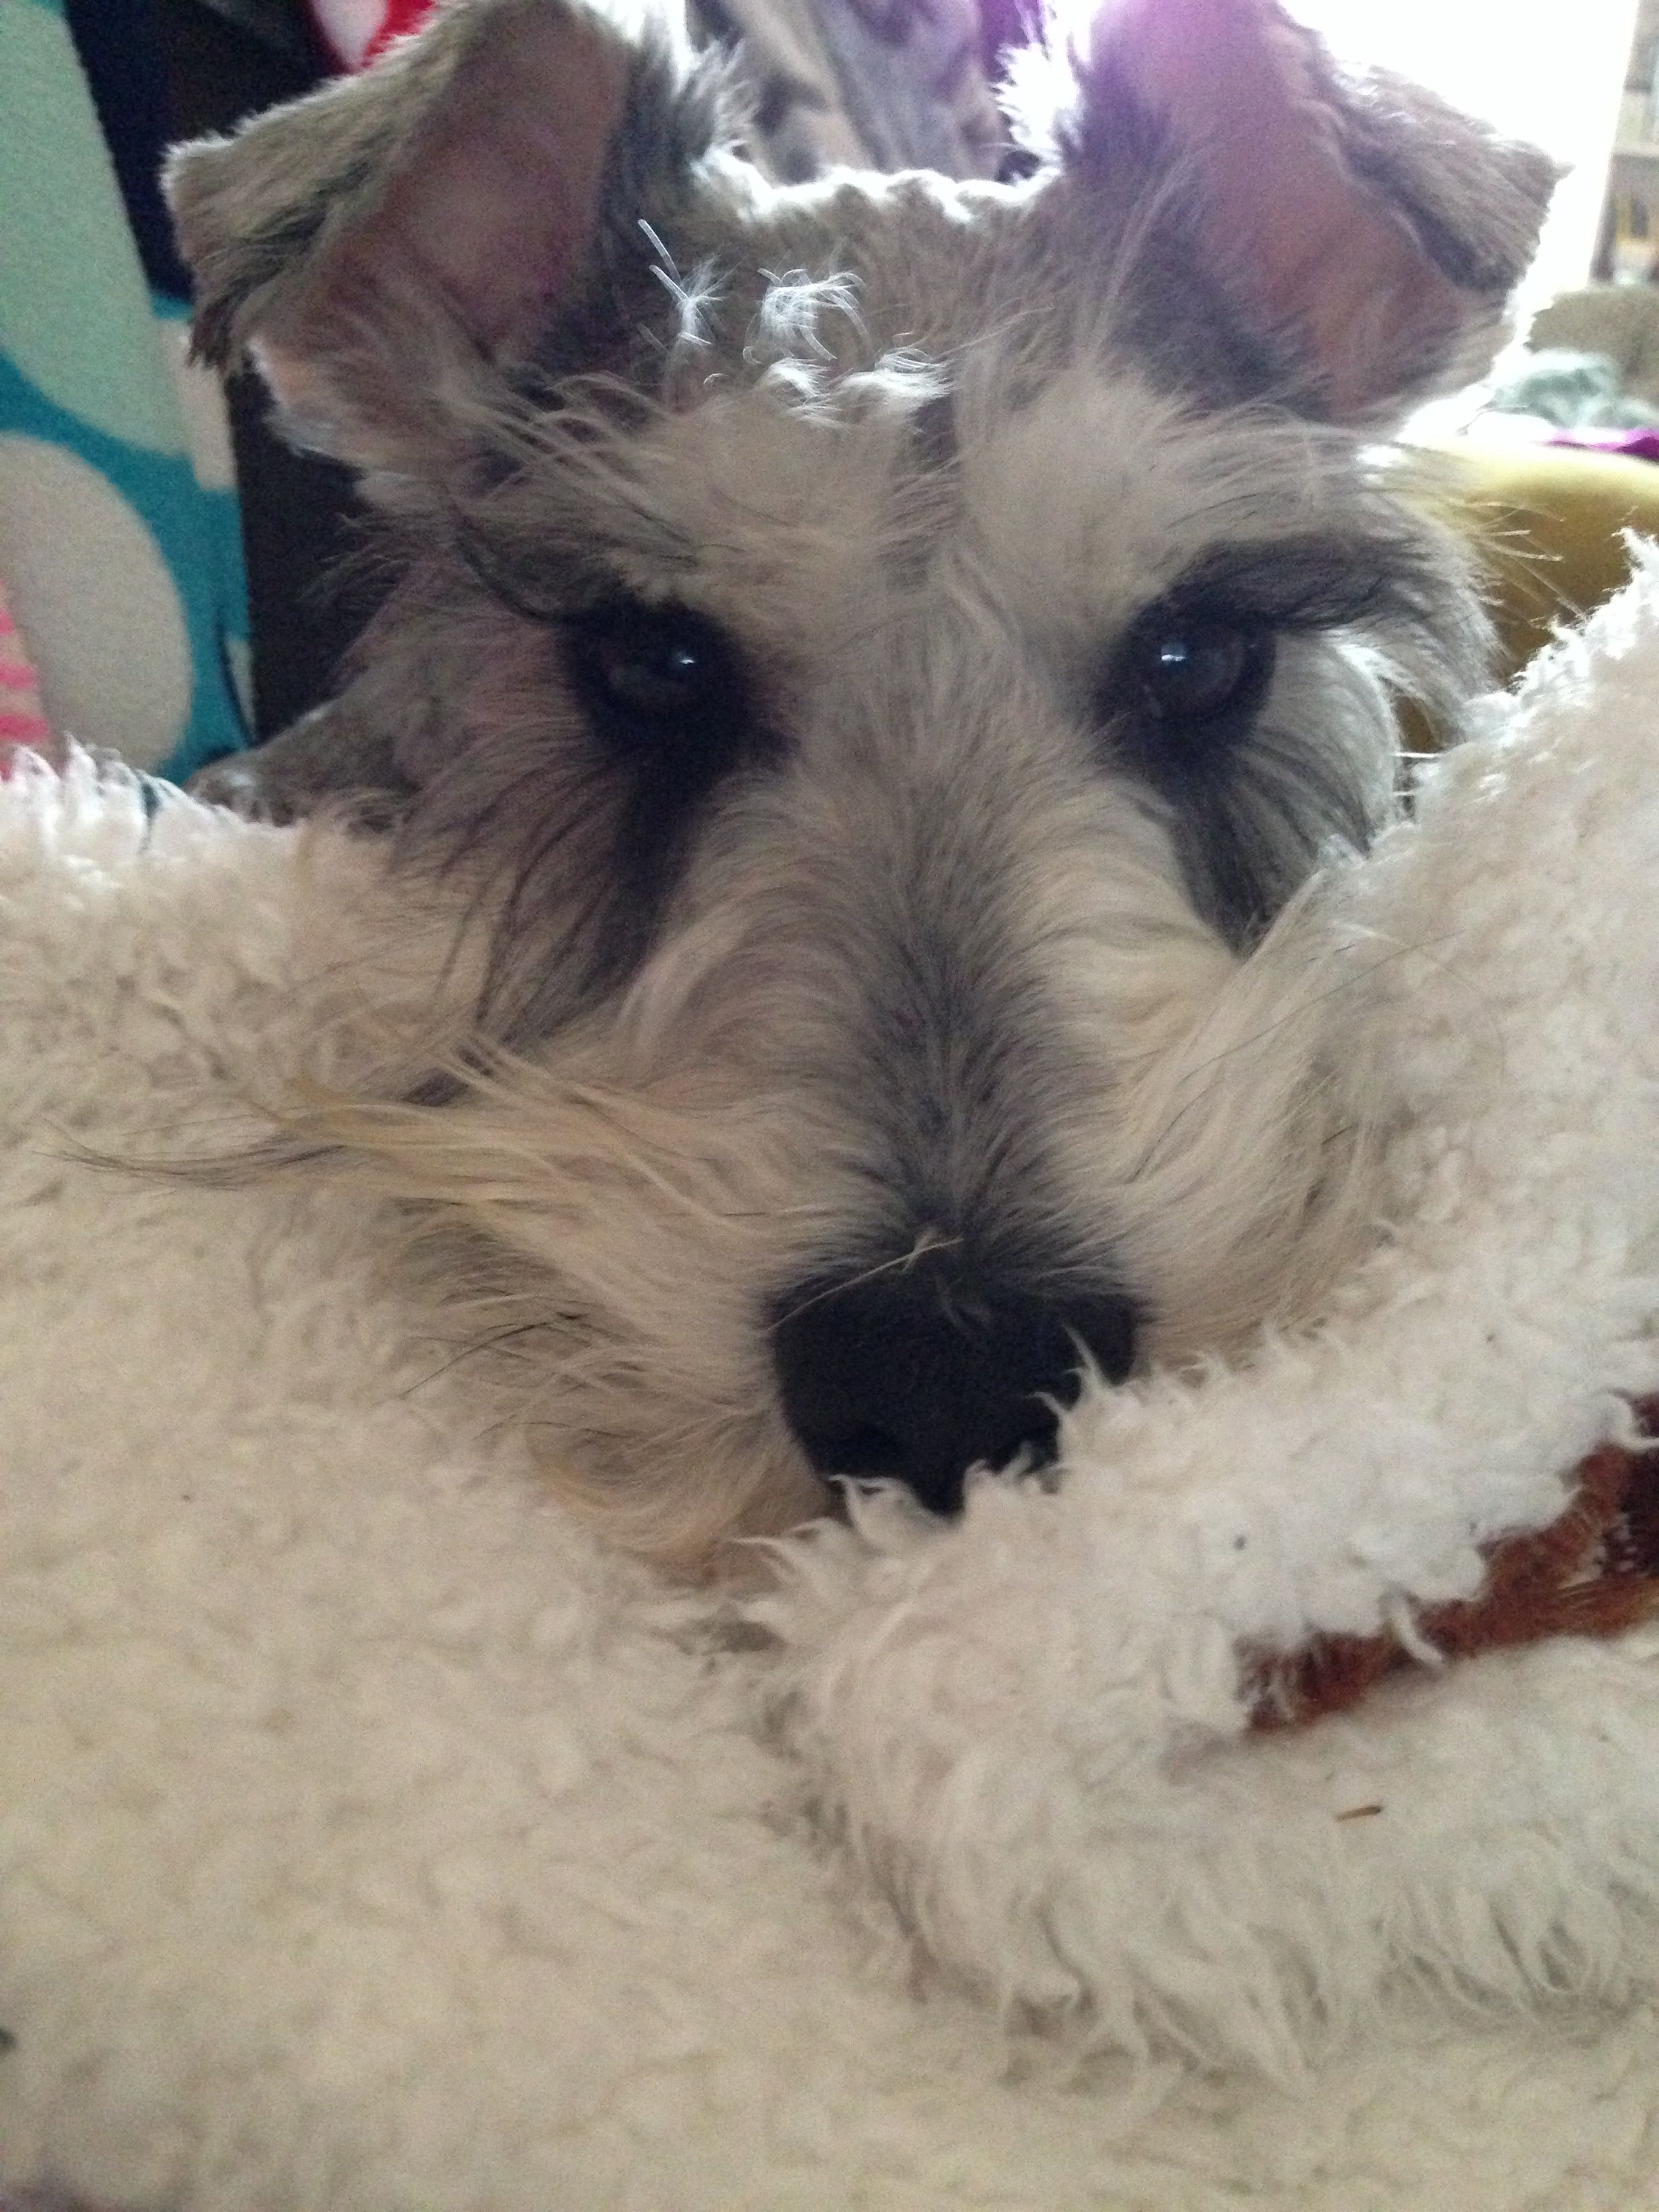 Klaus The Rescue Schnauzer Loves His Snuggly Blankets Check Out Mini Schnauzer Rescue Of North Texas That S Where We Fou Mini Schnauzer Schnauzer Love Pet